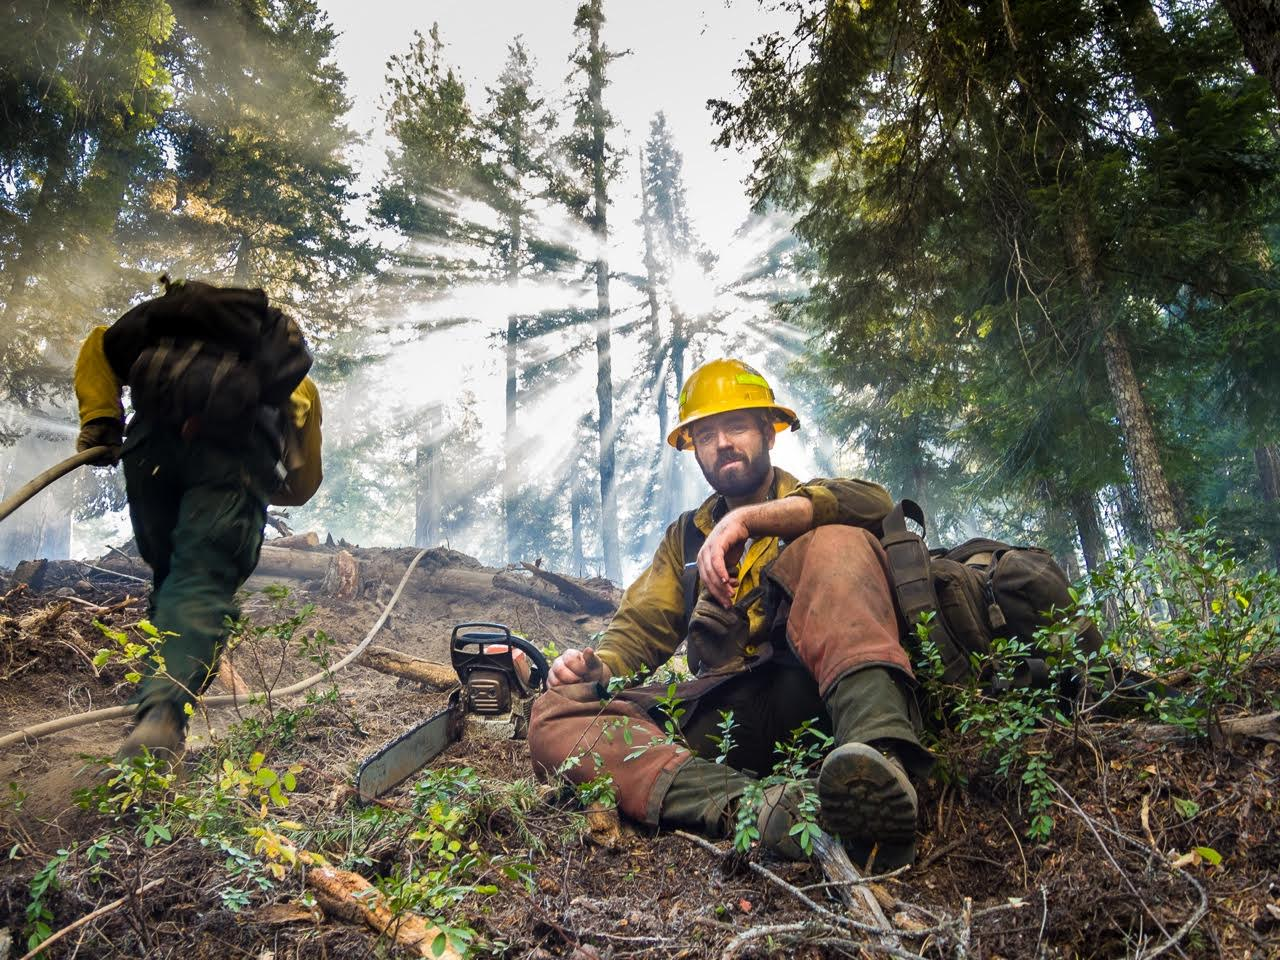 Becoming a wildland firefighter